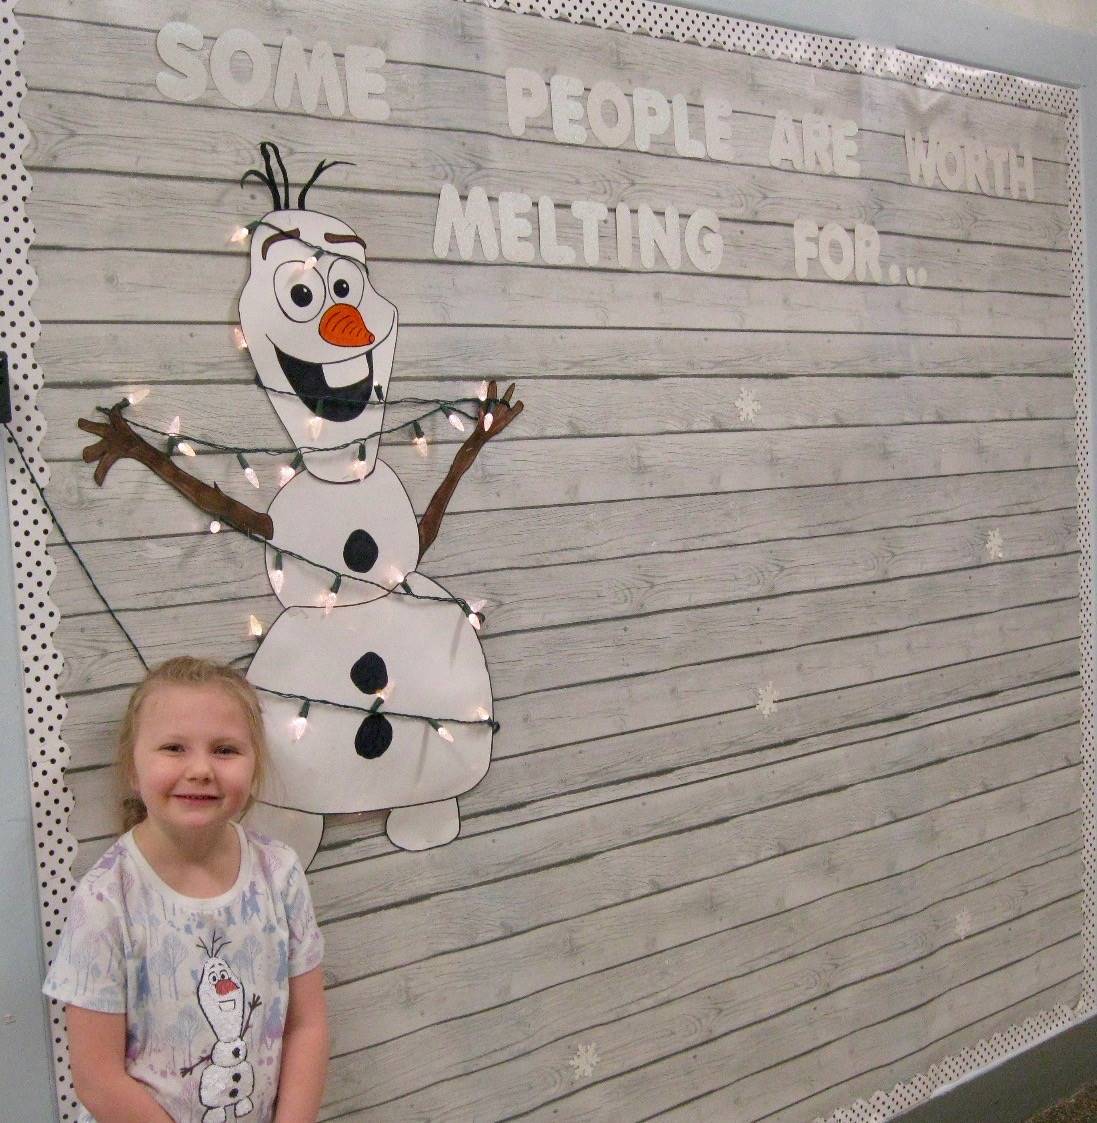 A child with olaf on shirt standing next to Olaf bulletin board.